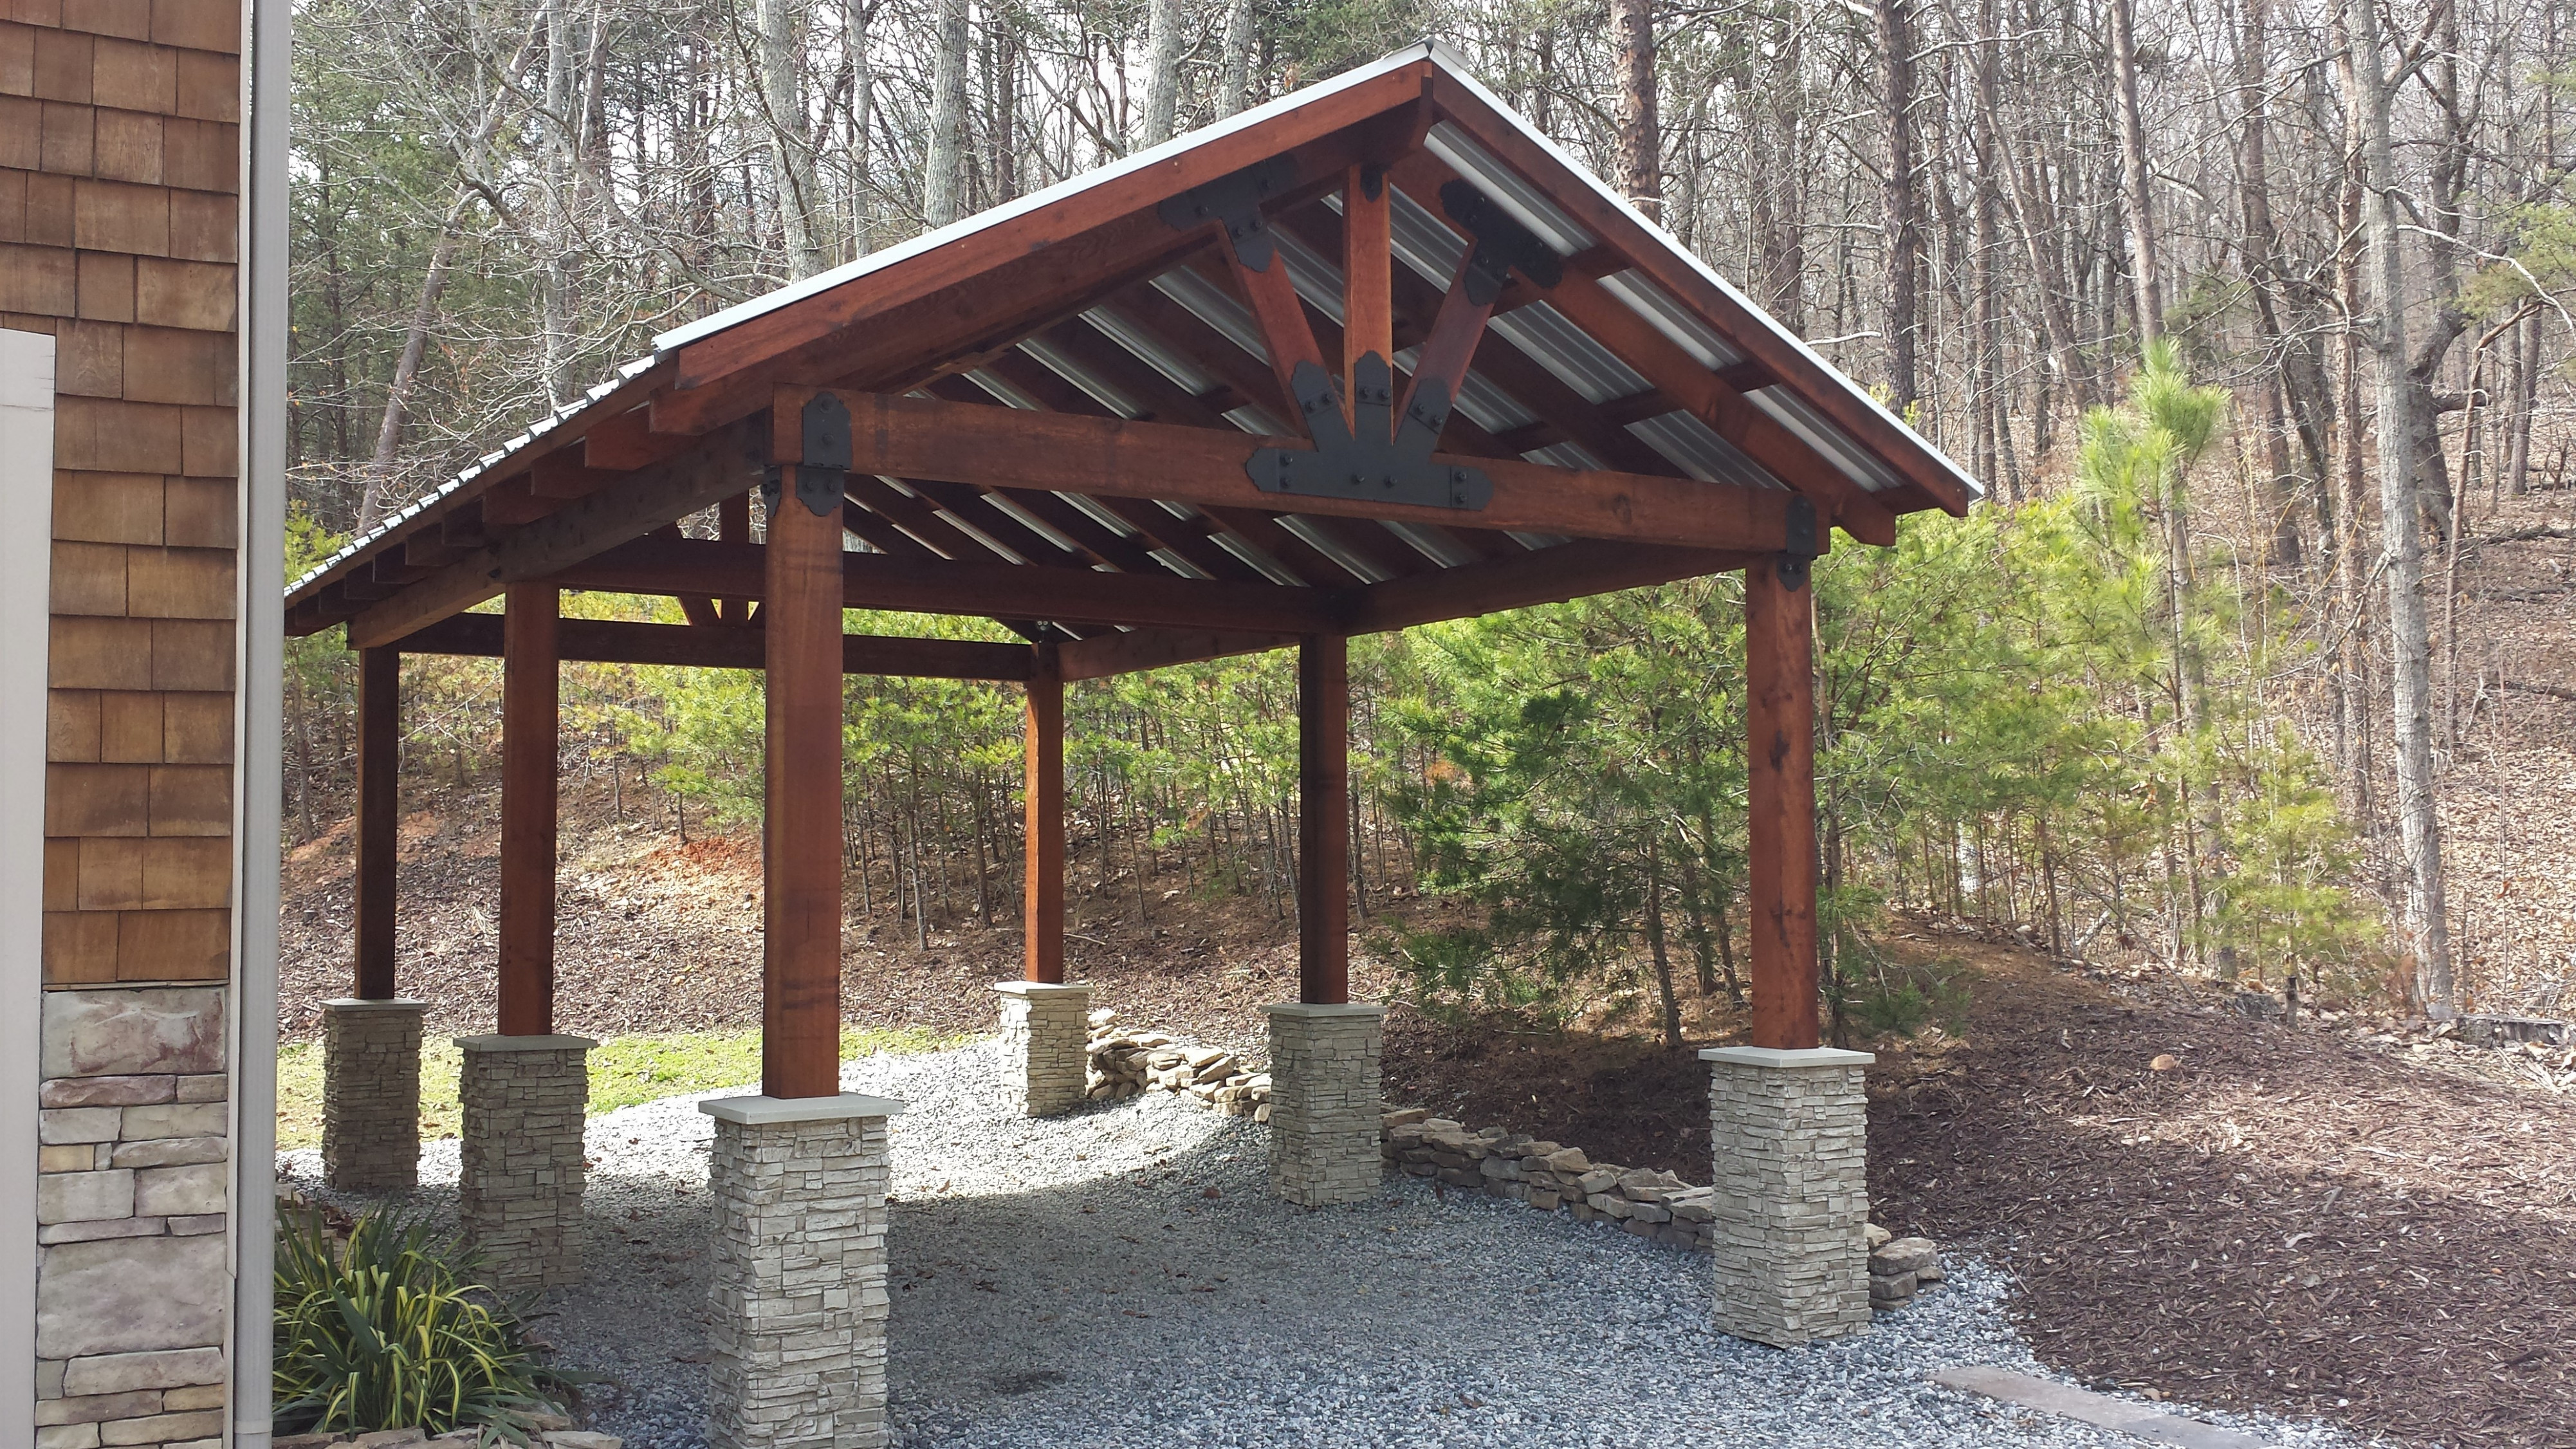 Carport Design With 'Stone' Column Bases | Creative Faux Panels Designs For Wooden Carports